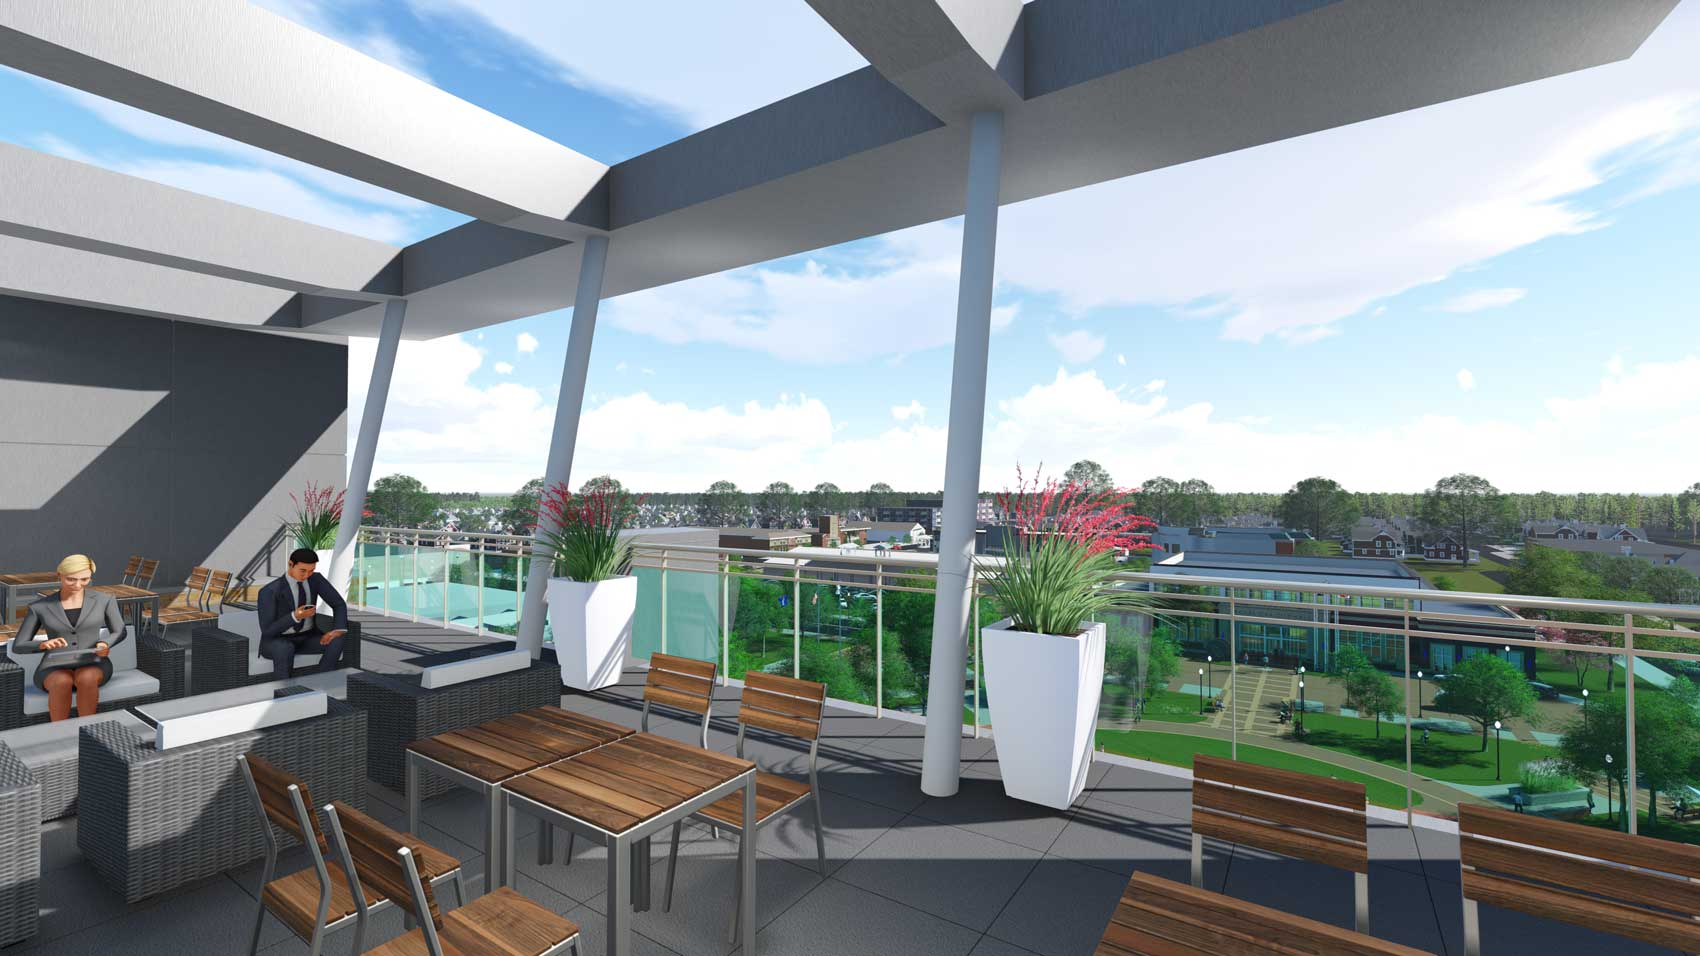 Royal Oak City Center rooftop patio and lounge area rendering